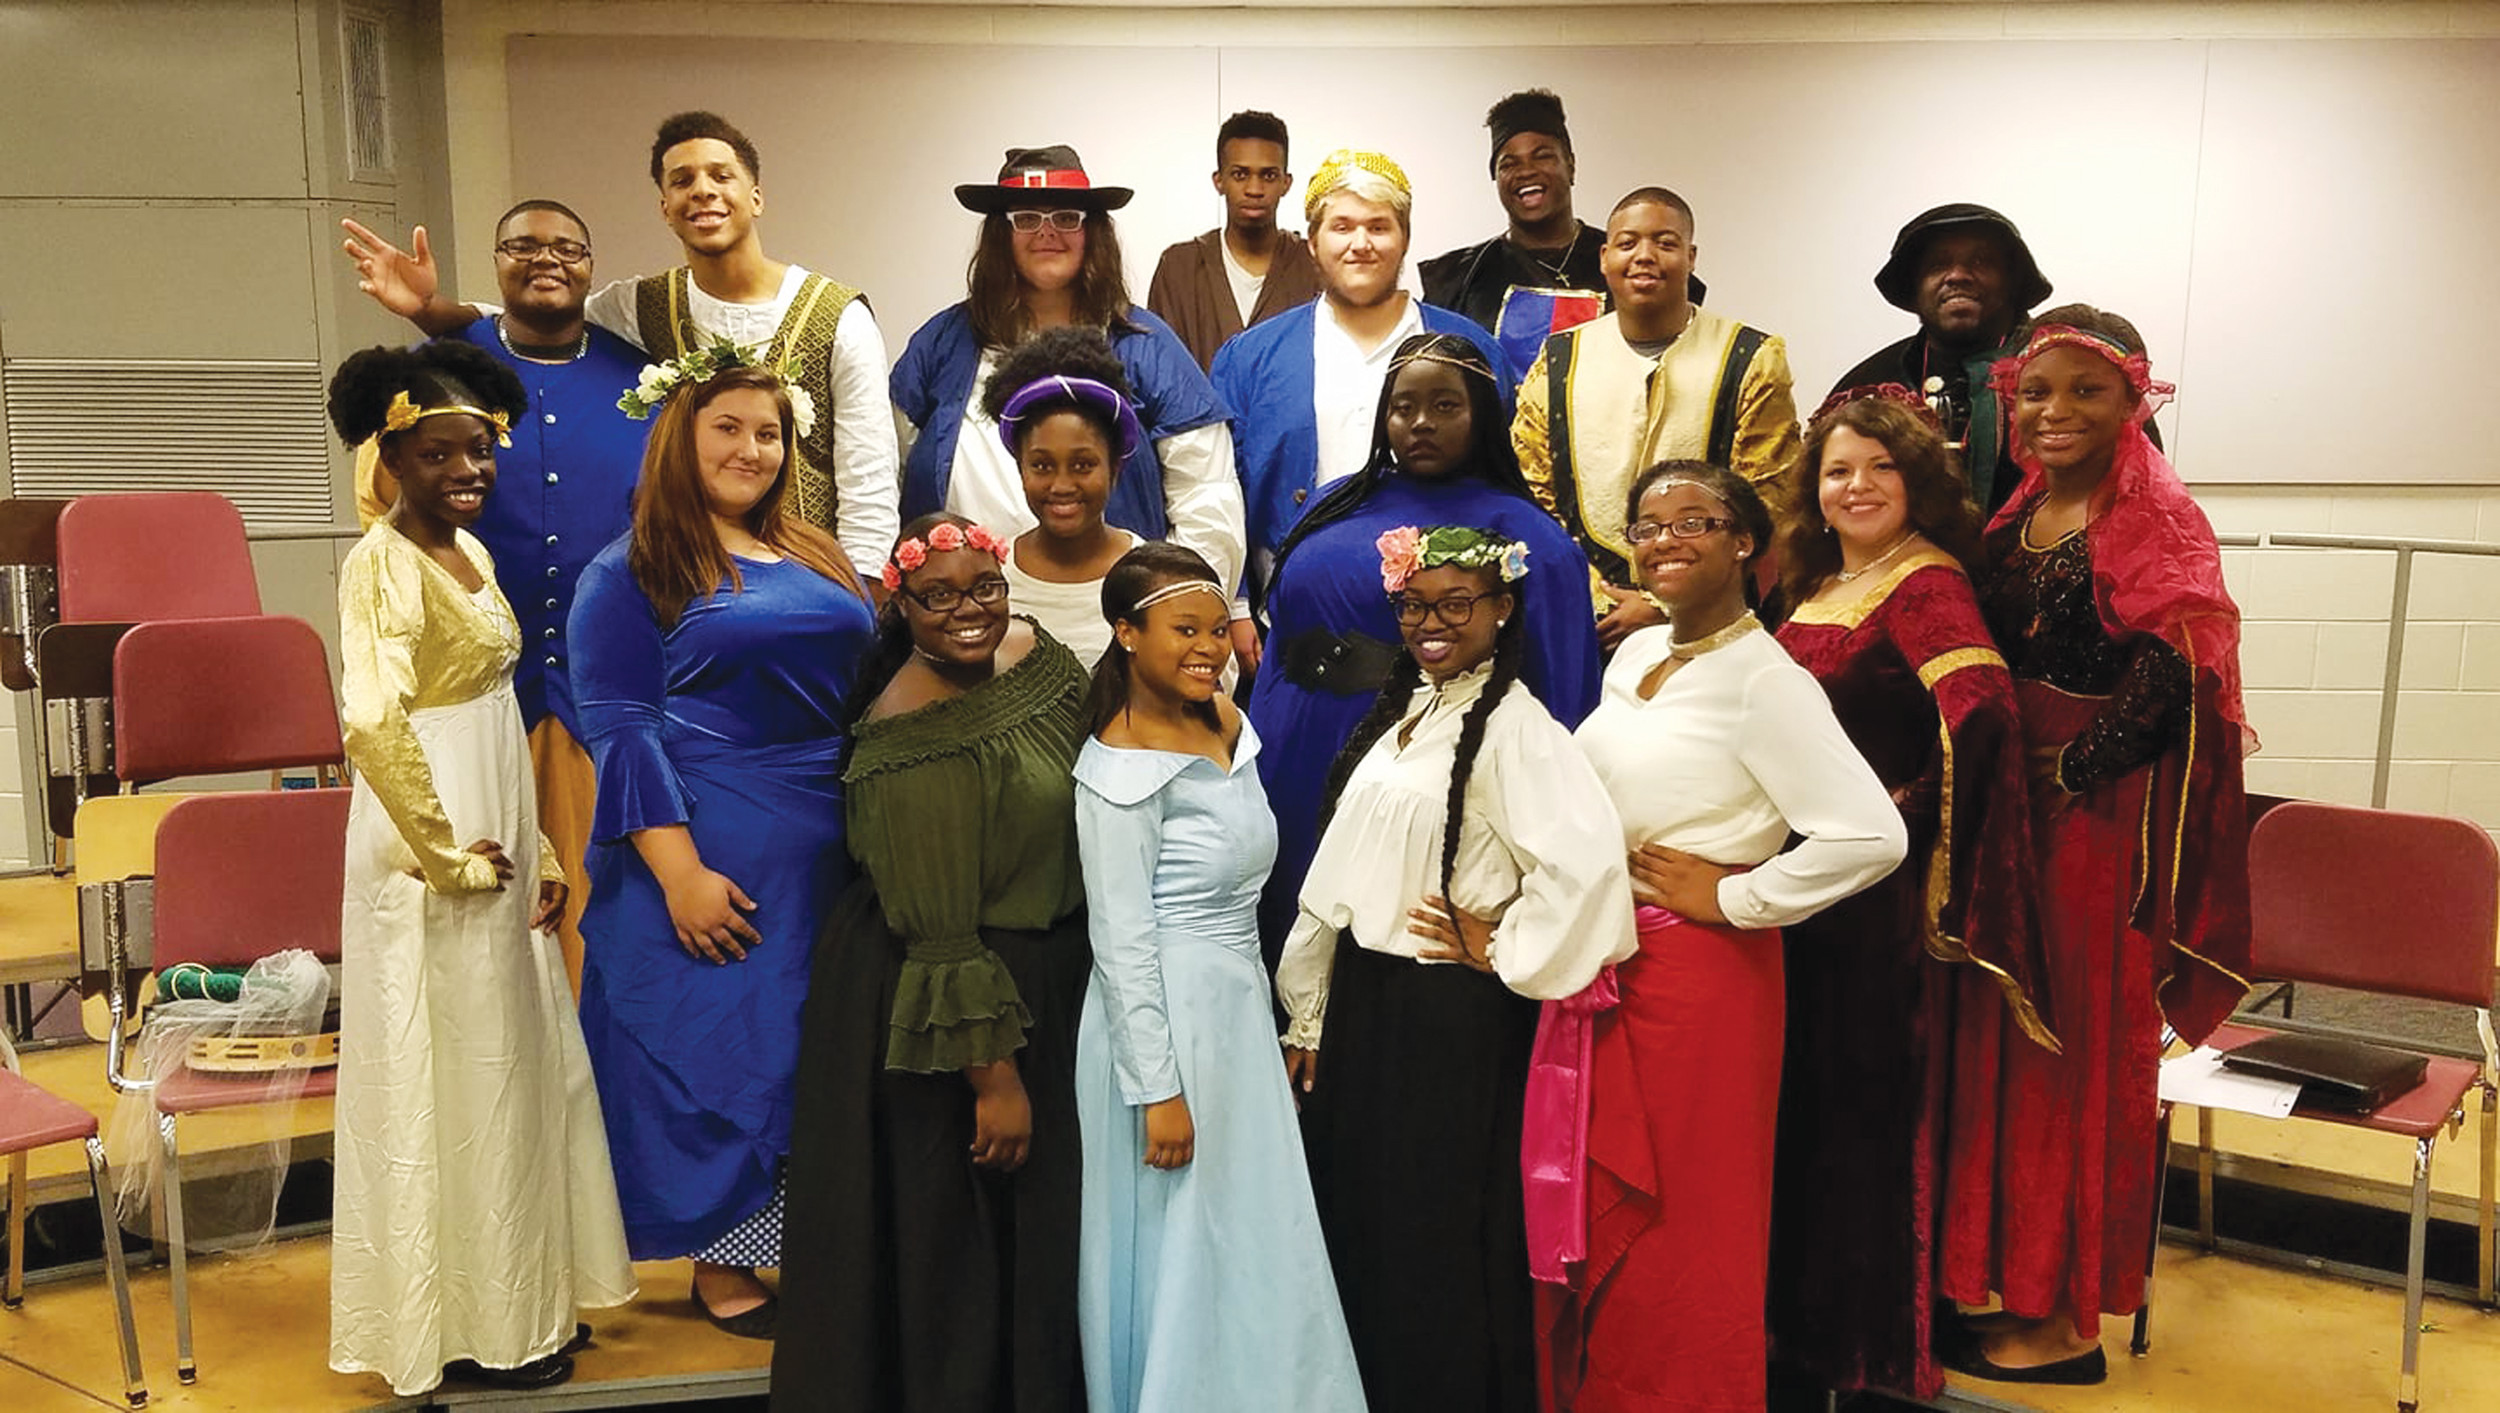 Lakewood High School Chamber Choir will present its 5th Annual Madrigal Dinner Theater at 6:30 p.m. Friday at Lakewood High School, 350 Old Manning Road. Proceeds will benefit programs and travel expenses for Lakewood's fine arts department.